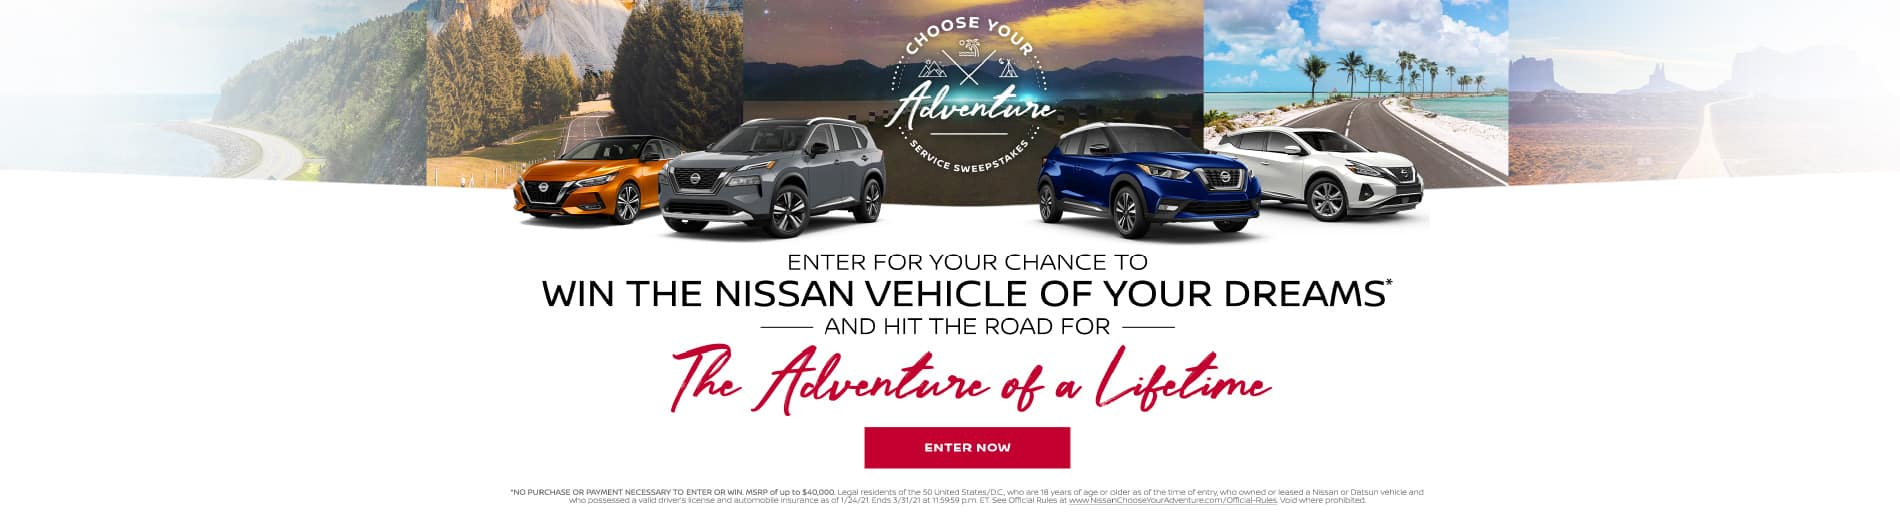 Enter for your chance to win the Nissan vehicle of your dreams - Enter Now